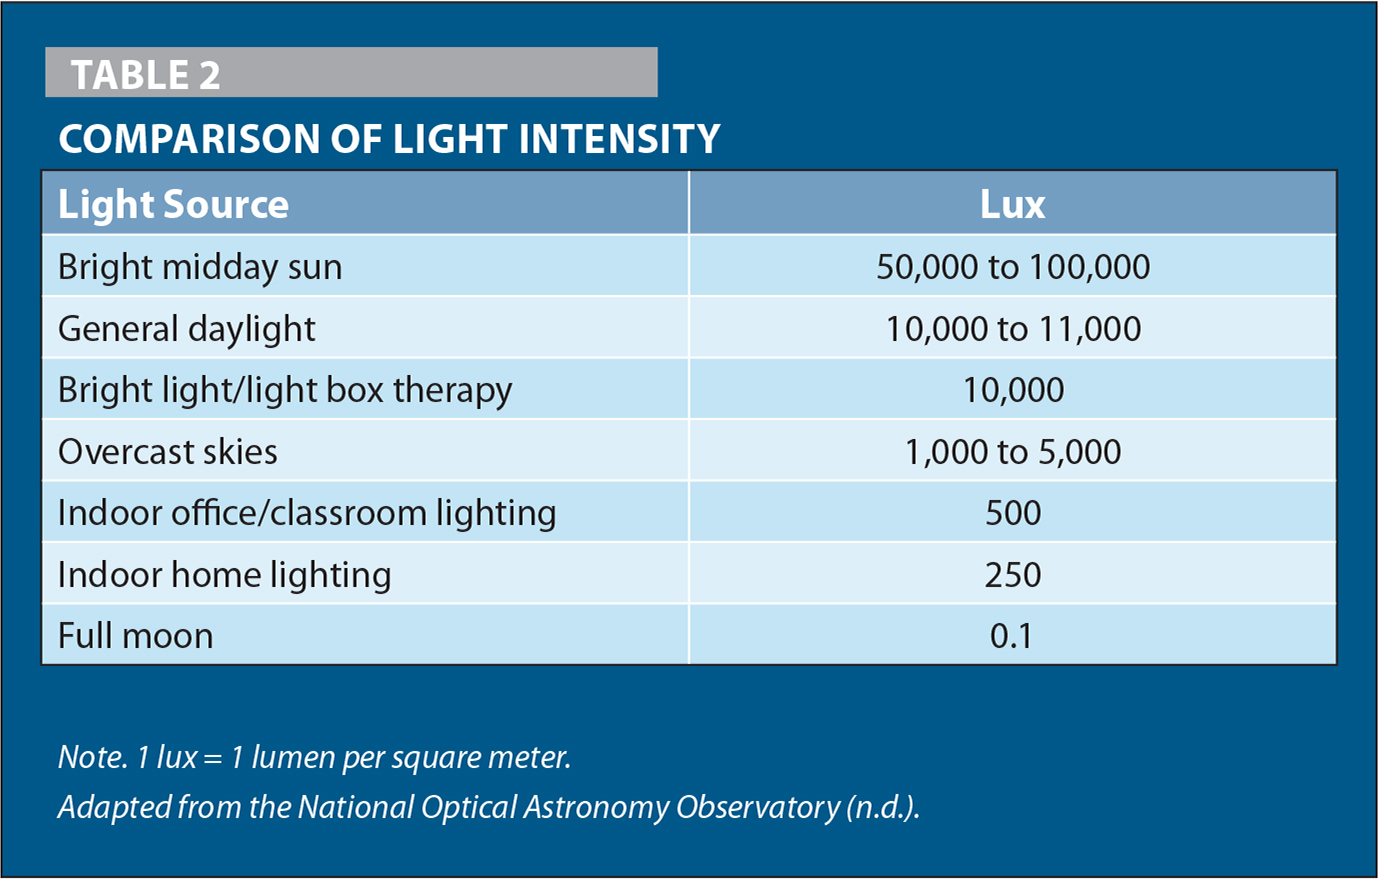 Comparison of Light Intensity